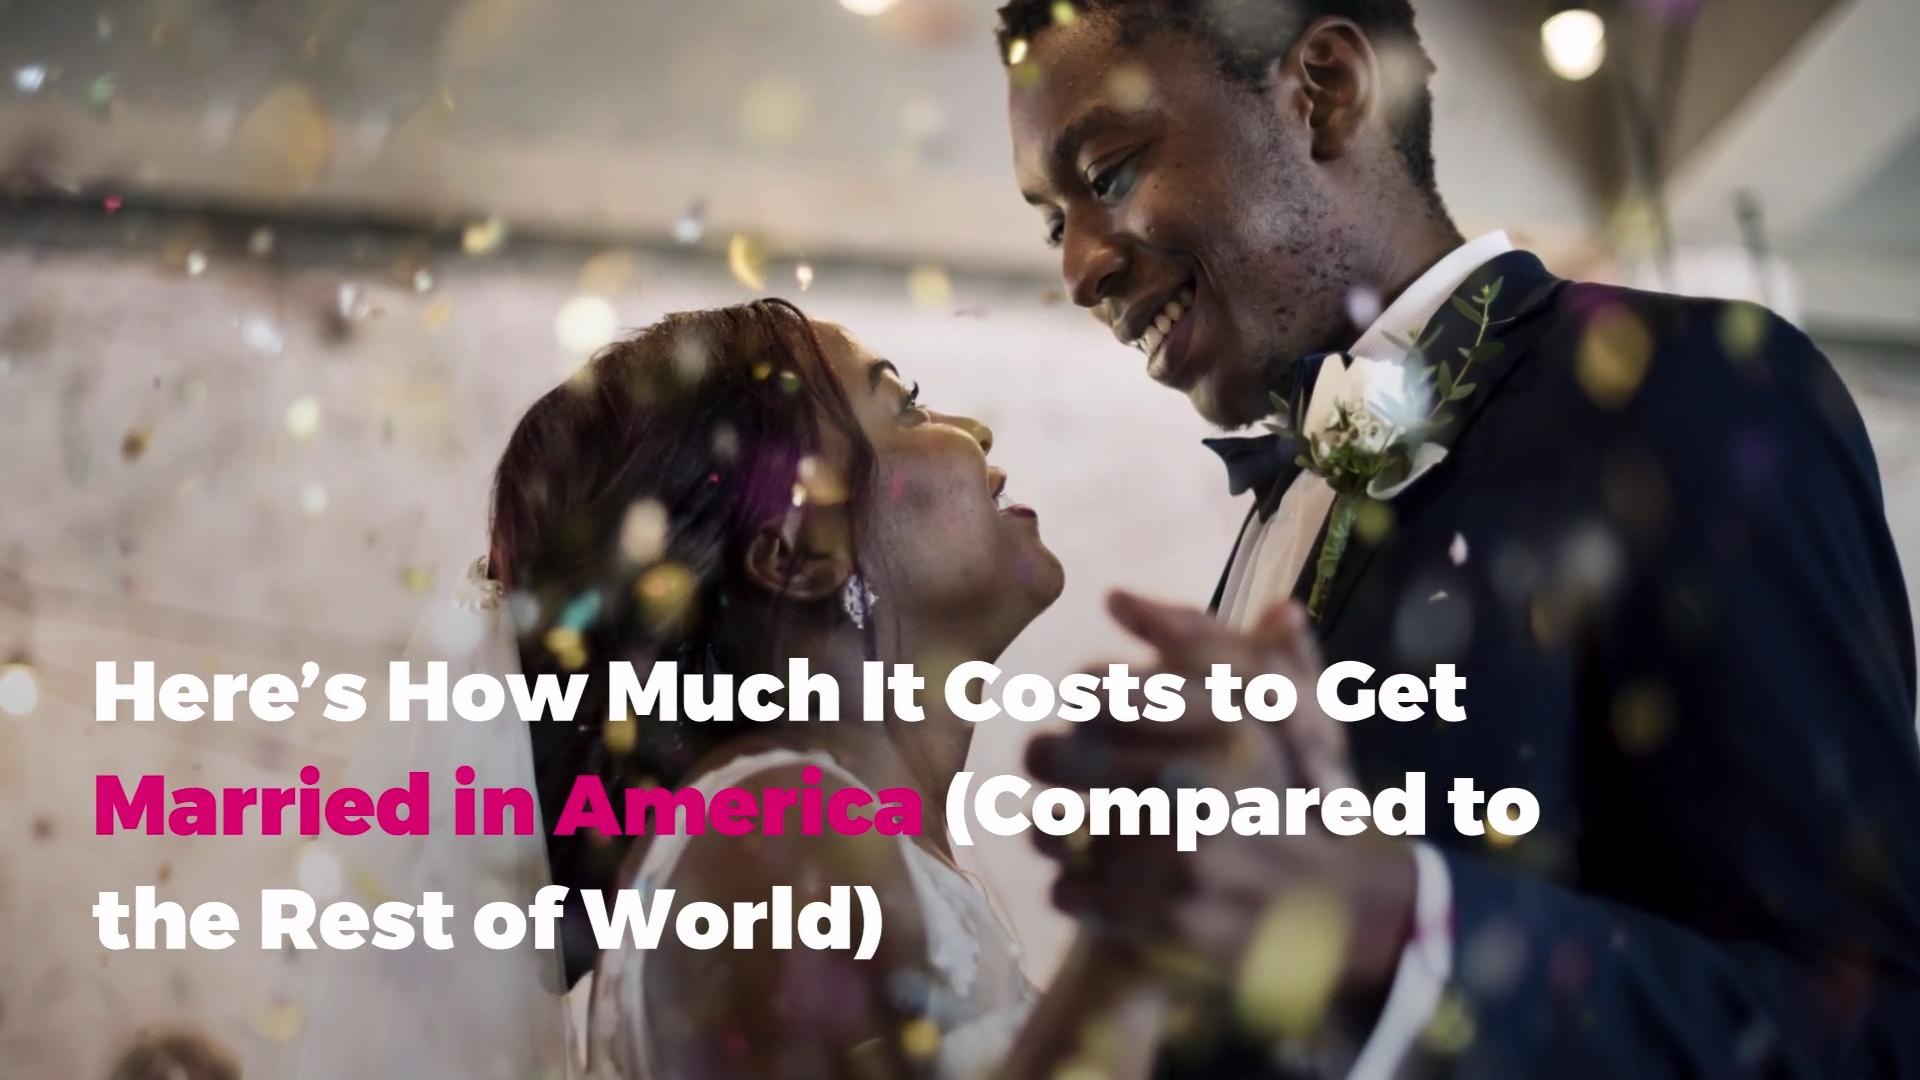 Here's How Much It Costs to Get Married in America (Compared to the Rest of World)